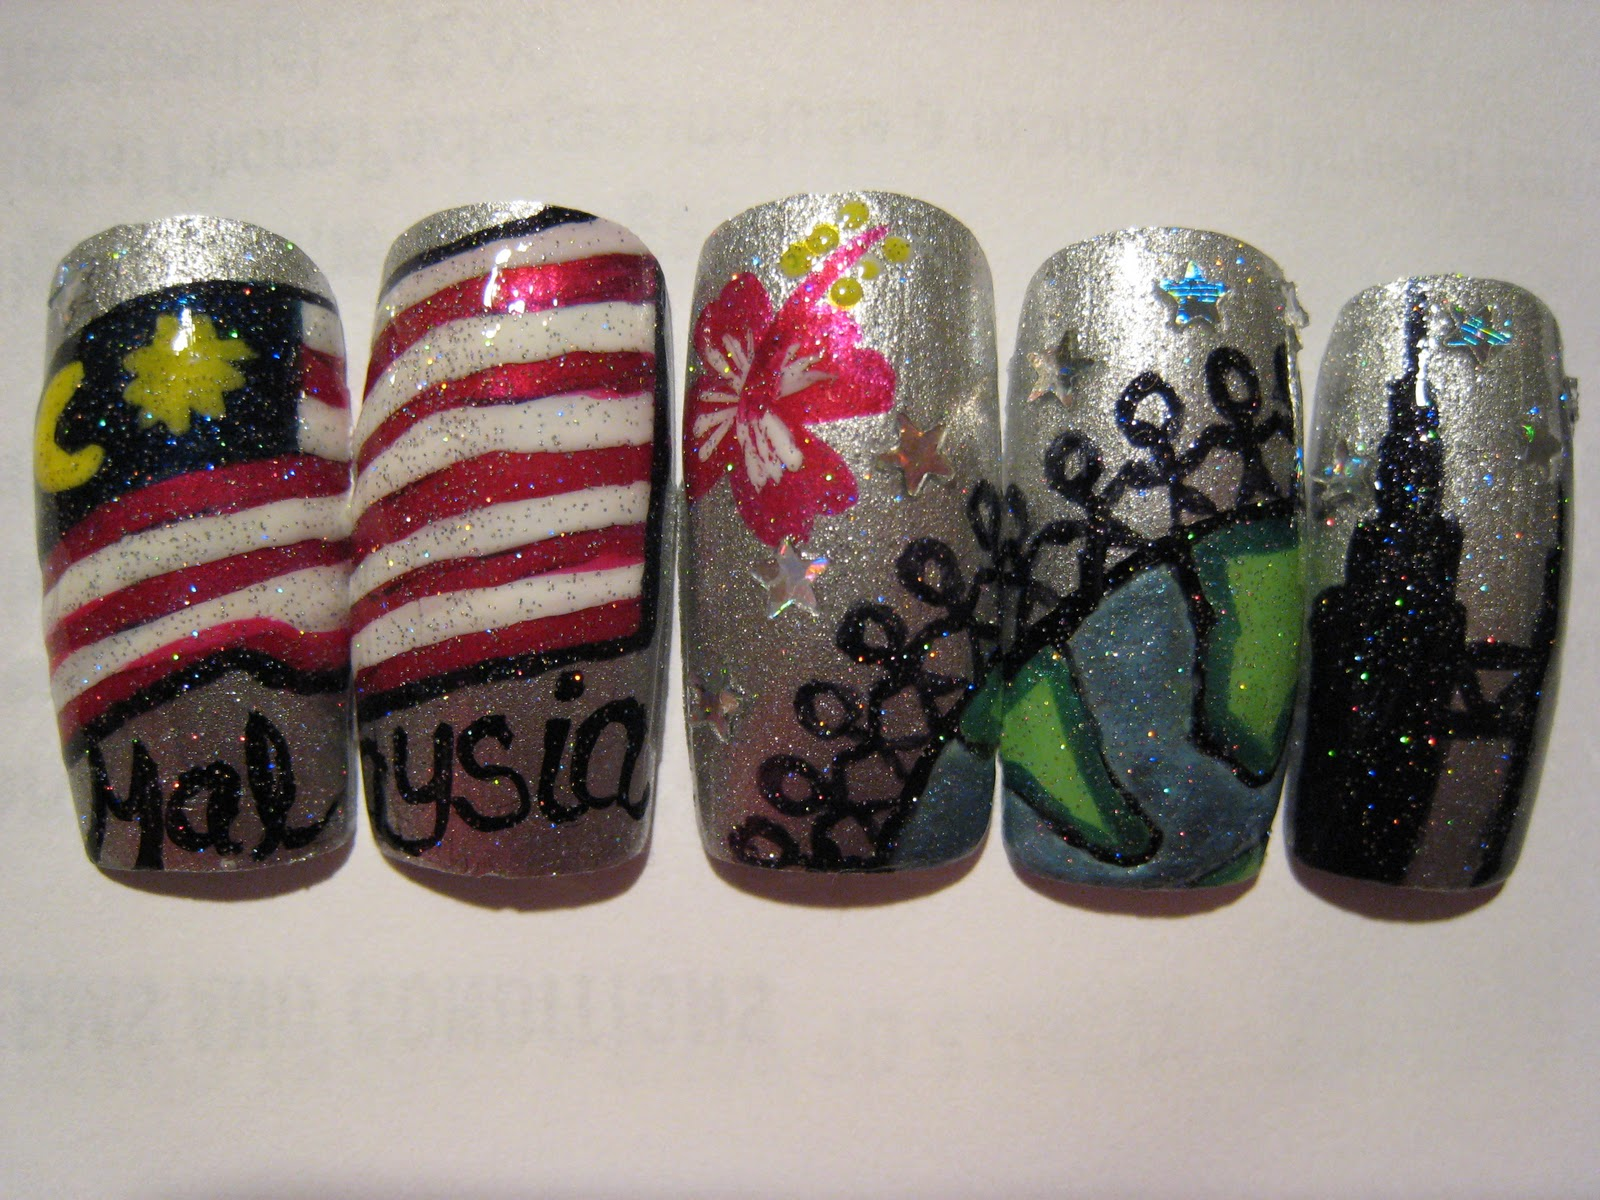 Silence is loud show my country nail art a nail art that represent my country alot of people are not familiar with my country basically when you look at the world map and find the potato gumiabroncs Images